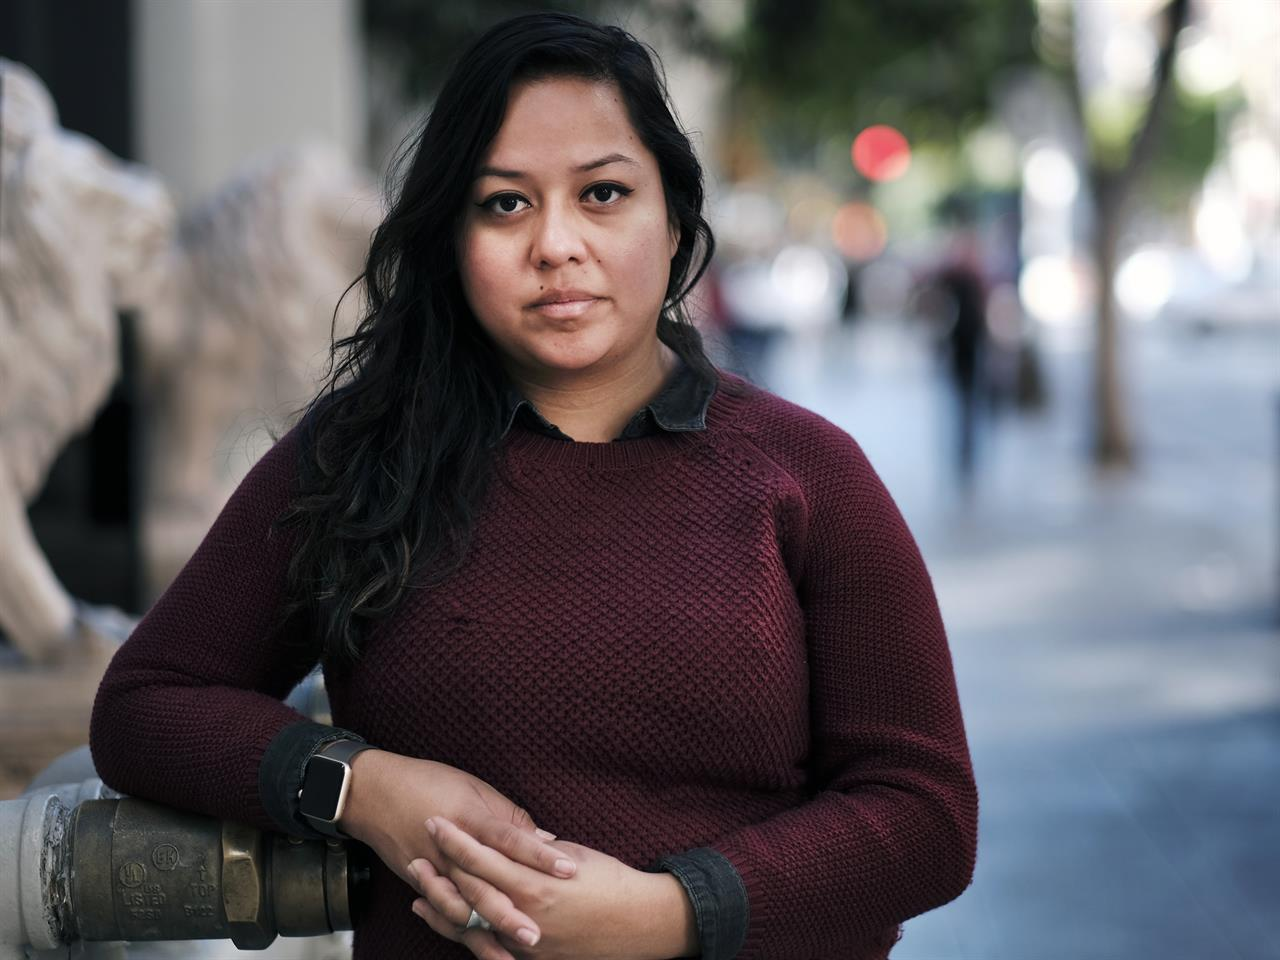 claim accuses wells fargo of denying loans to young migrants claim accuses wells fargo of denying loans to young migrants